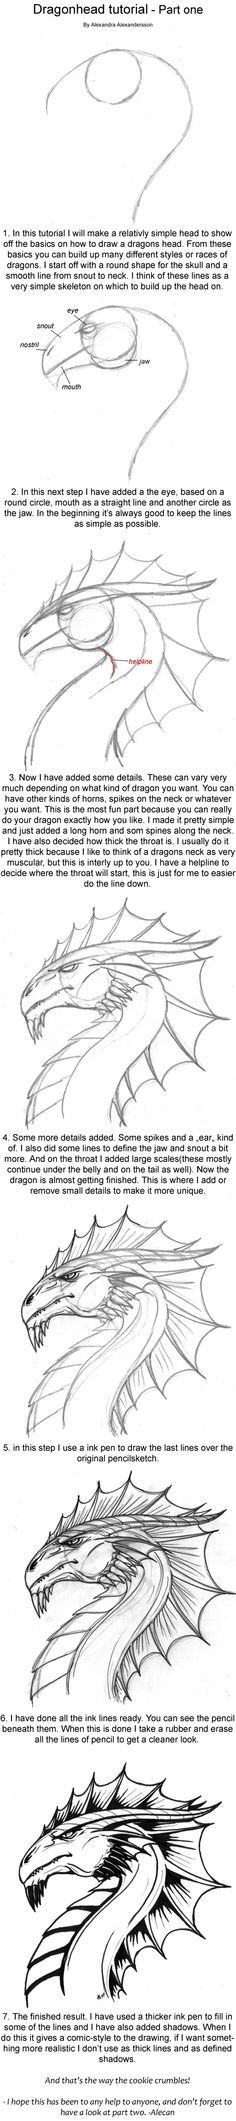 Drawing Animals Tips Dragonhead Tutorial part one by alecan on deviantART Drawing Lessons, Drawing Techniques, Drawing Tips, Drawing Reference, Drawing Tutorials, Art Tutorials, Art Lessons, Animal Drawings, Cool Drawings